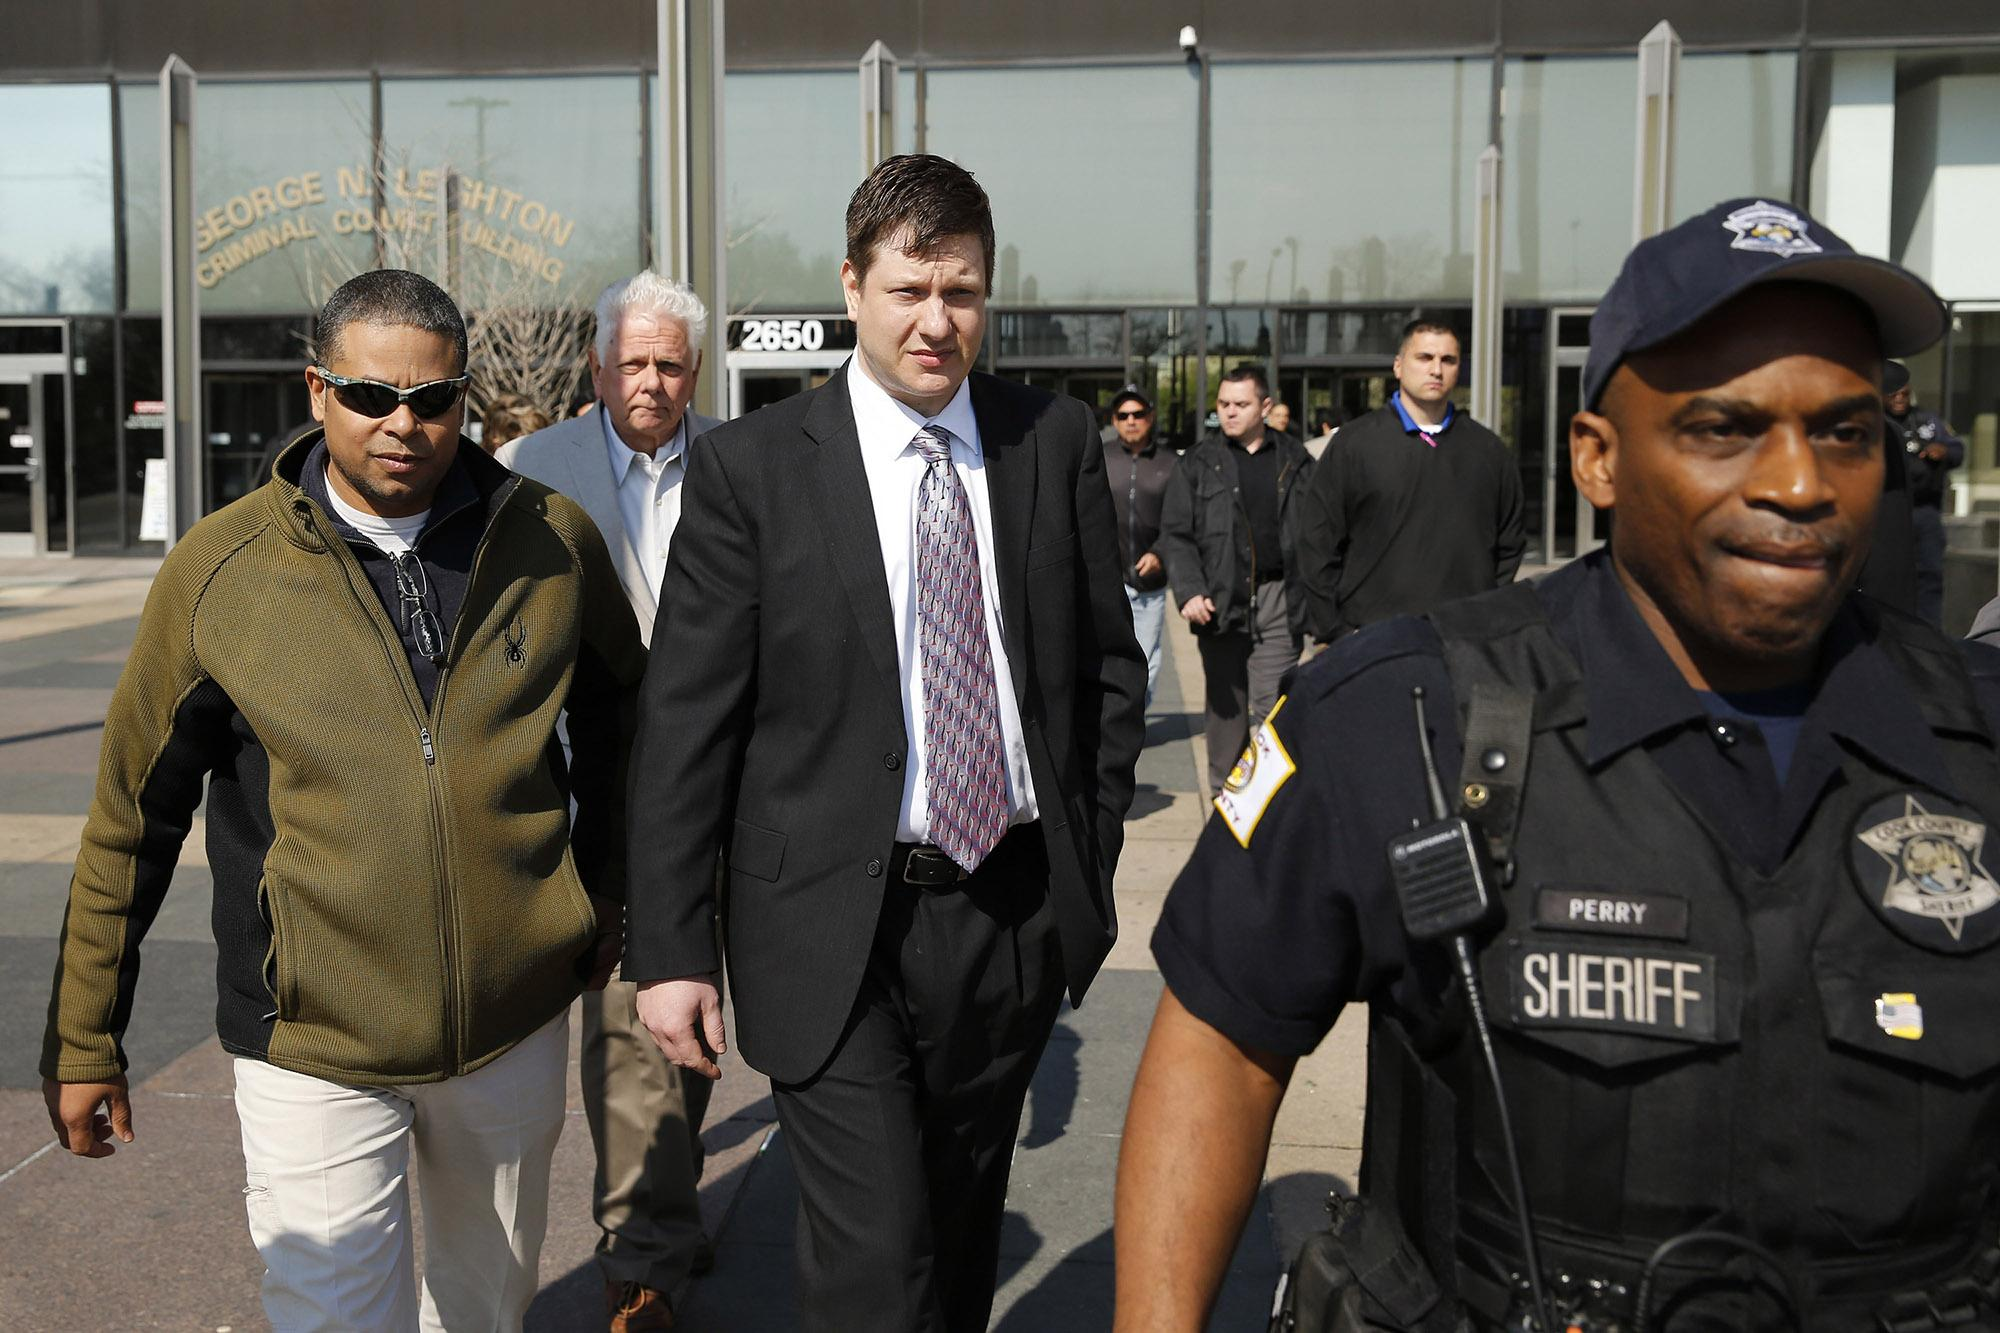 Officer Jason Van Dyke, center, leaves the Leighton Criminal Court Building in Chicago following a court appearance on May 5. (Jose M. Osorio/Chicago Tribune/TNS)